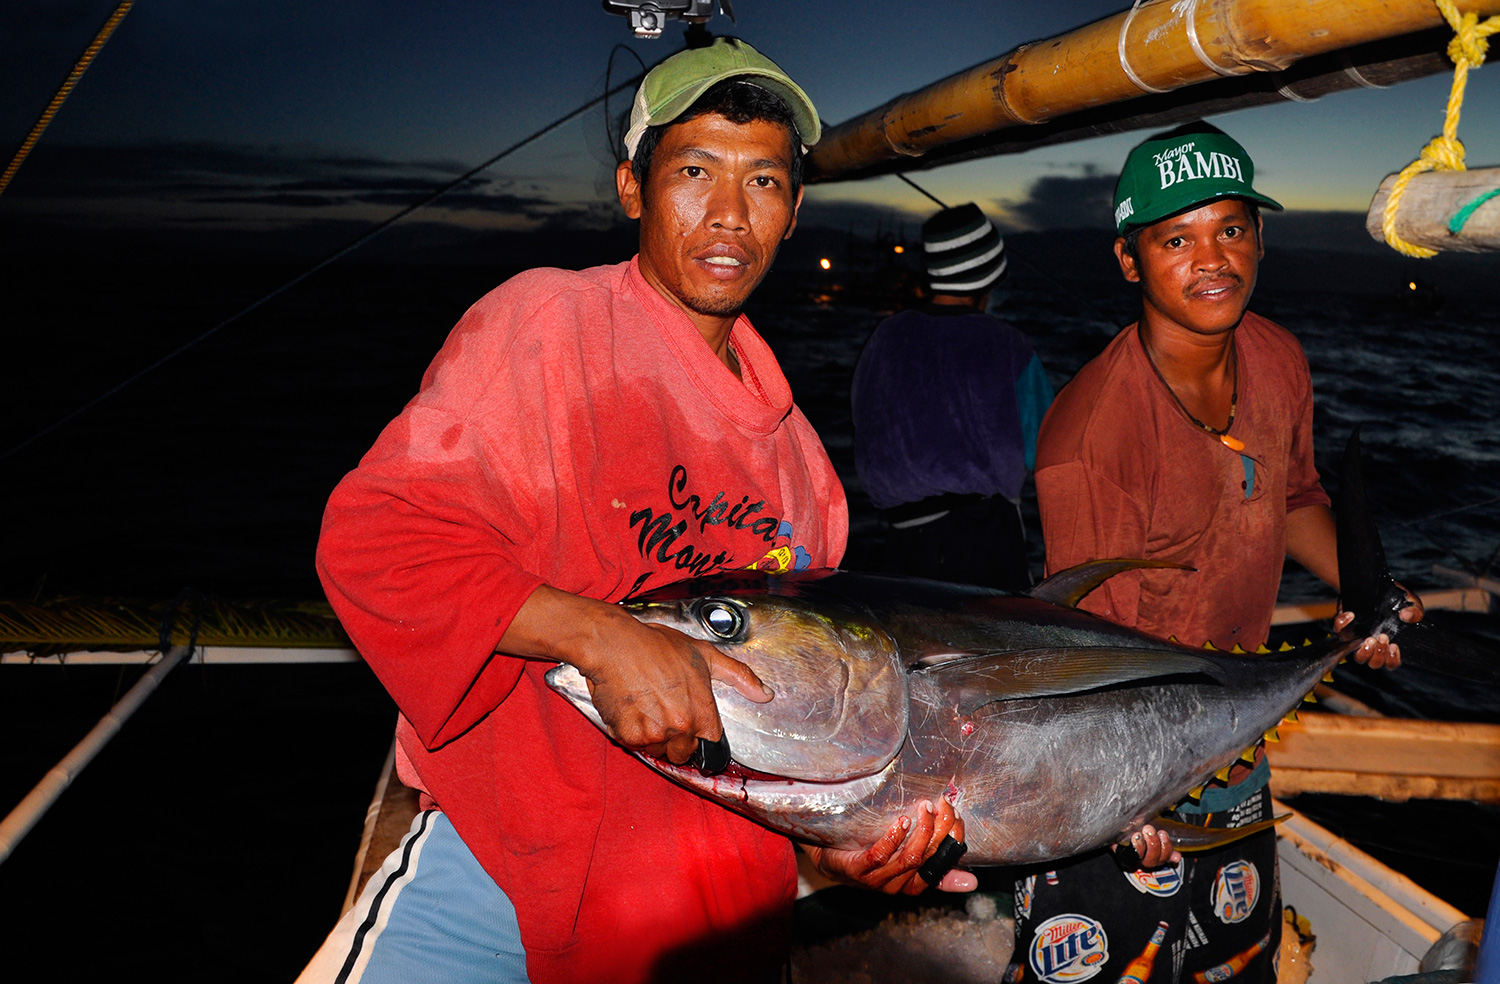 Tuna fishermen and their prized catch (Photo by Gregg Yan / WWF)